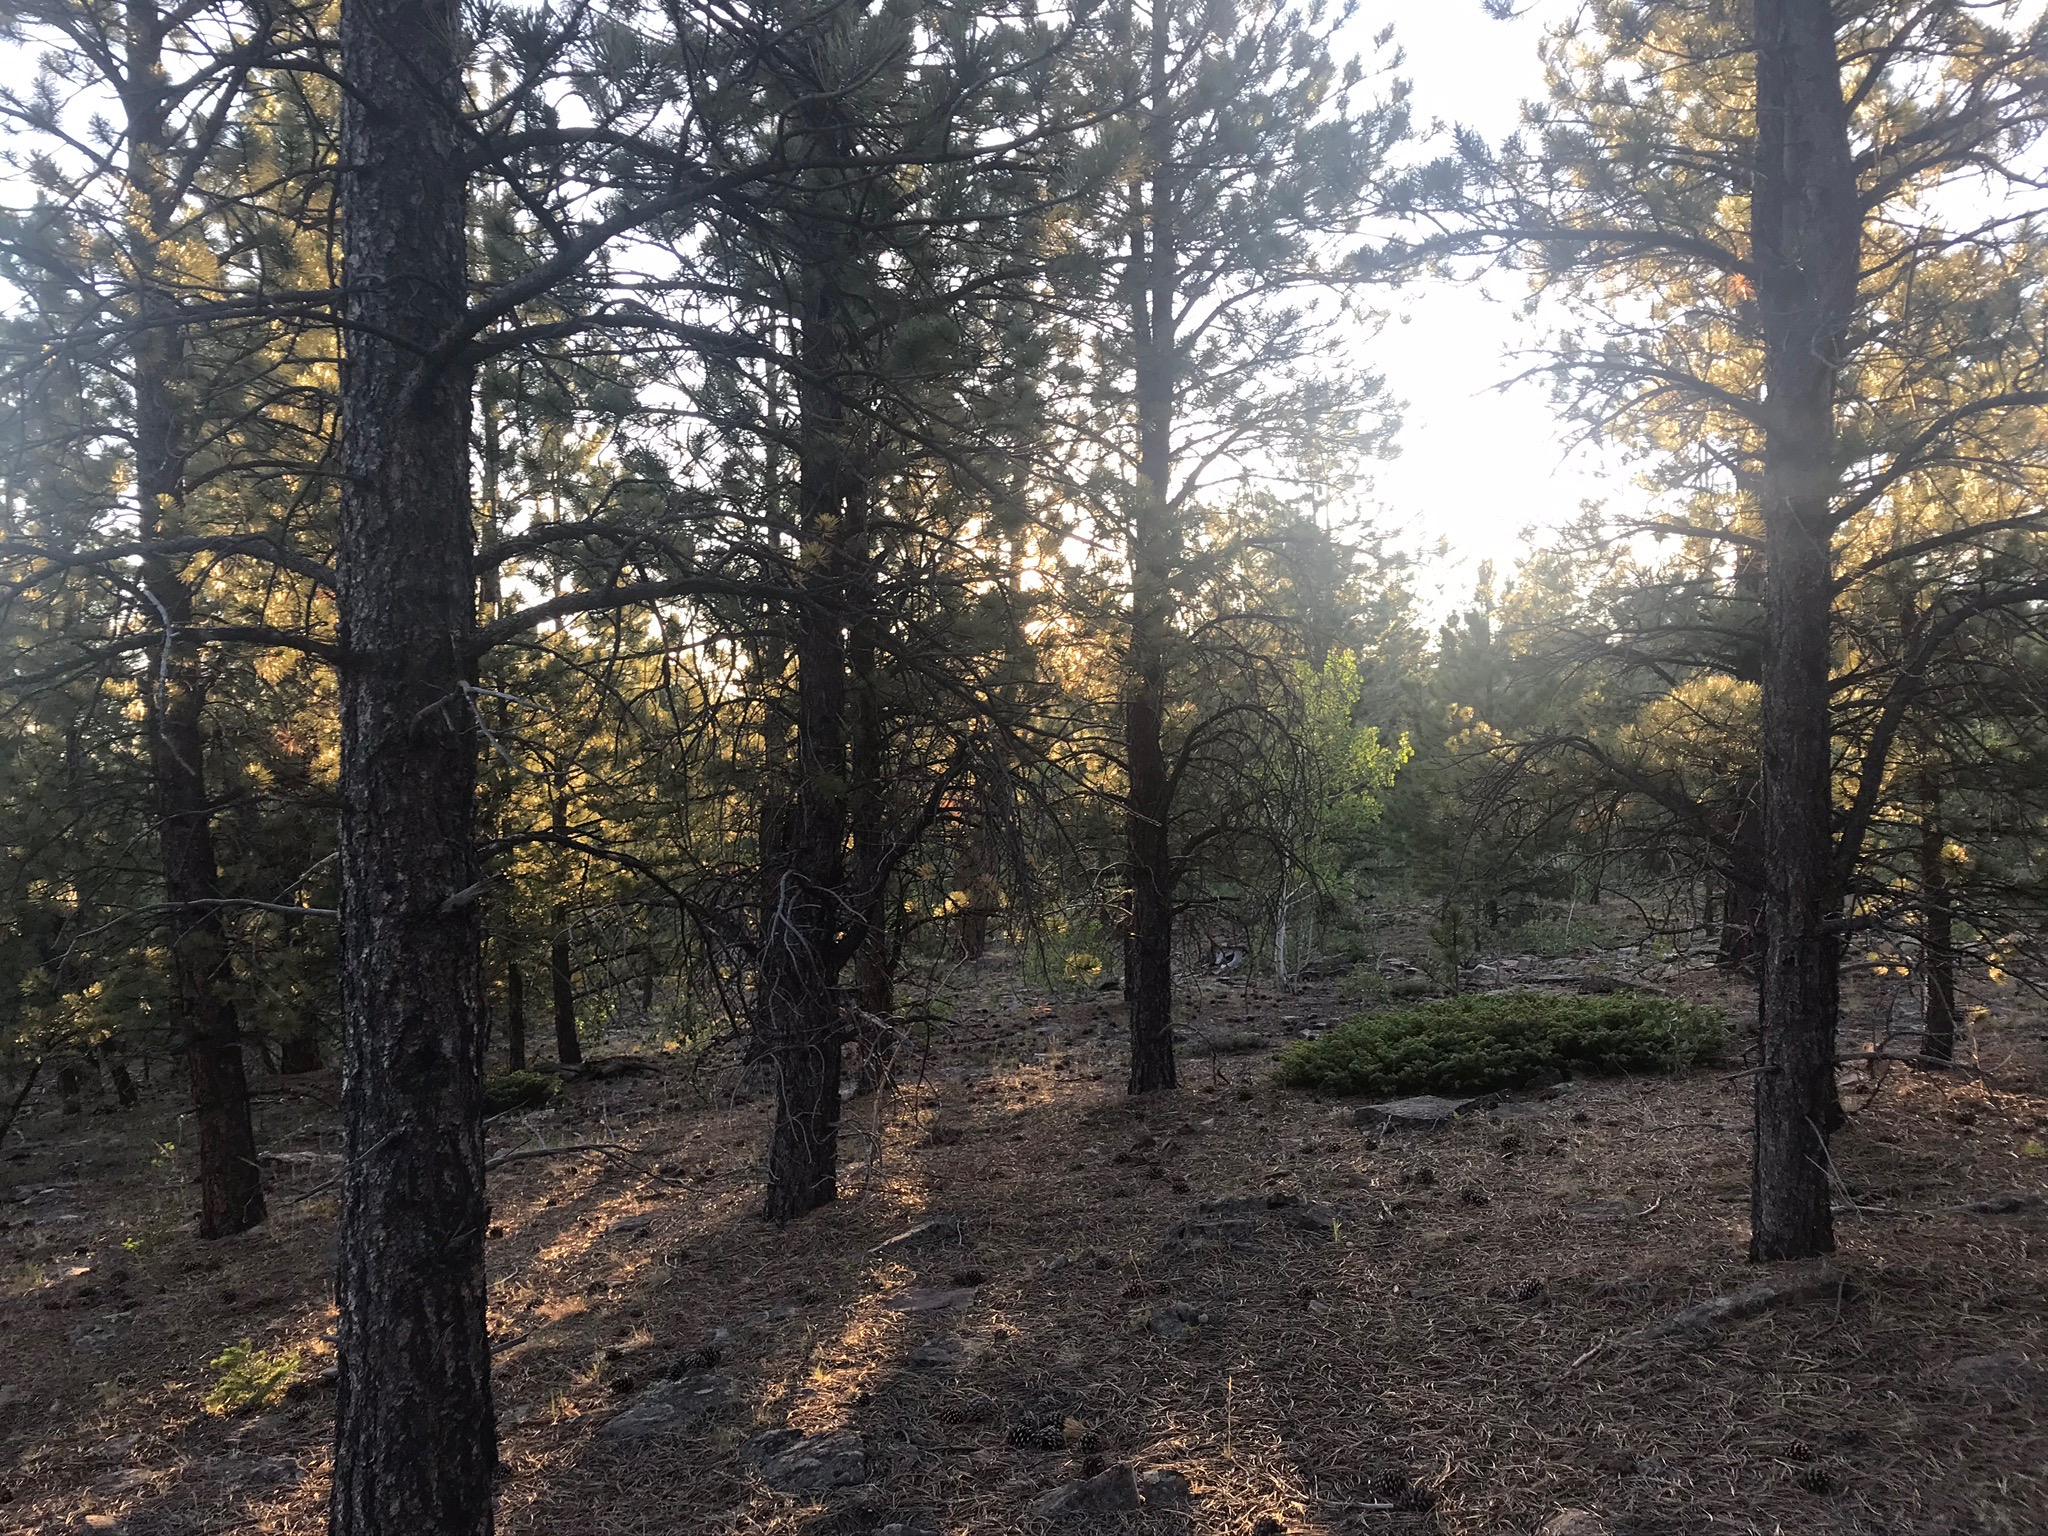 That is where I was free. Whole universes of imagination were created each day. We kids ruled the forest.